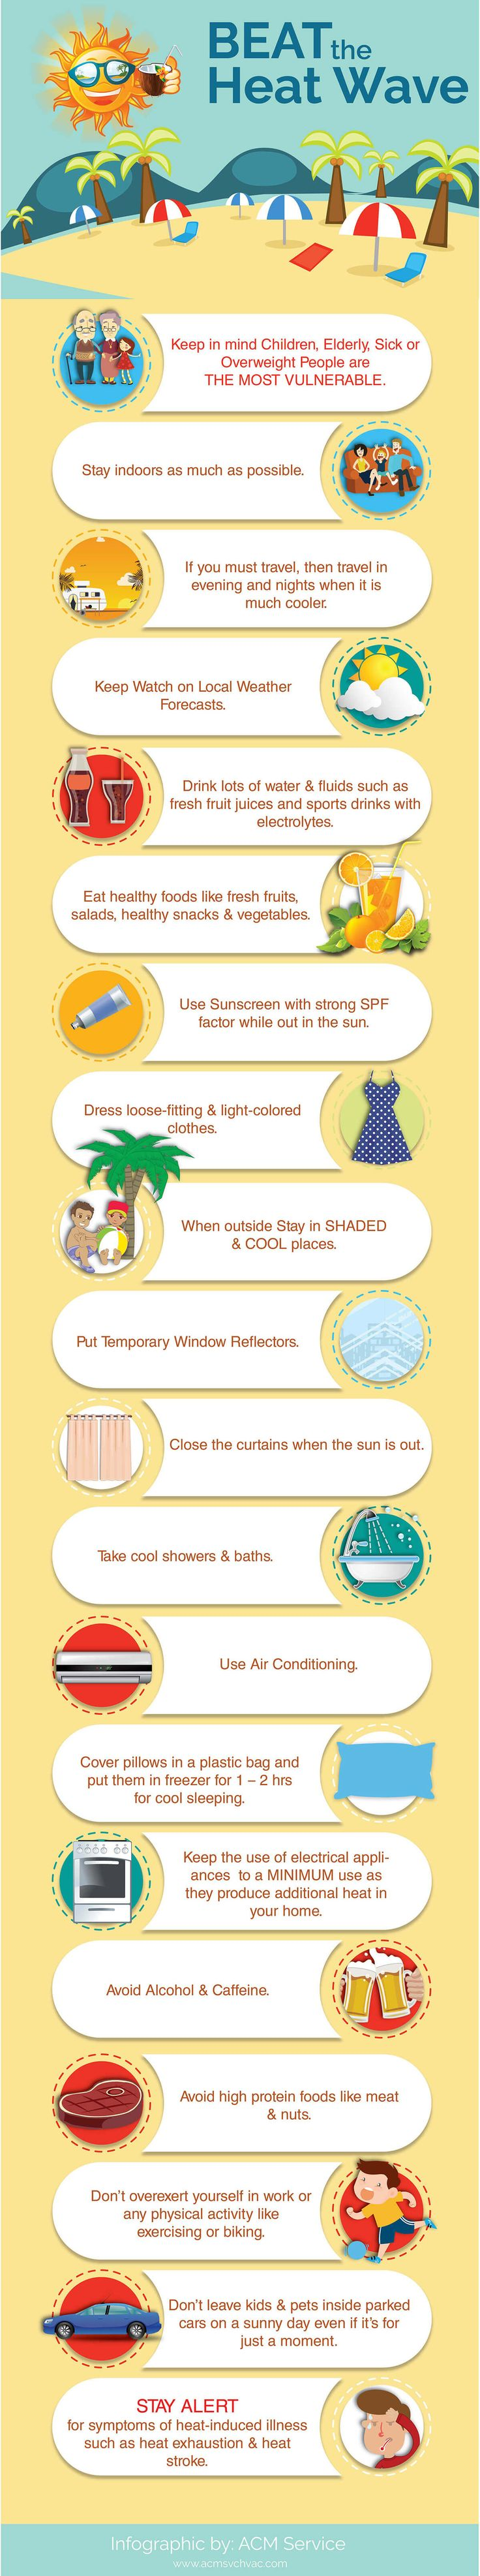 Having a hard time battling the hot weather in summer? Then, check out this infographic to know more about how to beat the heat wave & stay cool in summer.